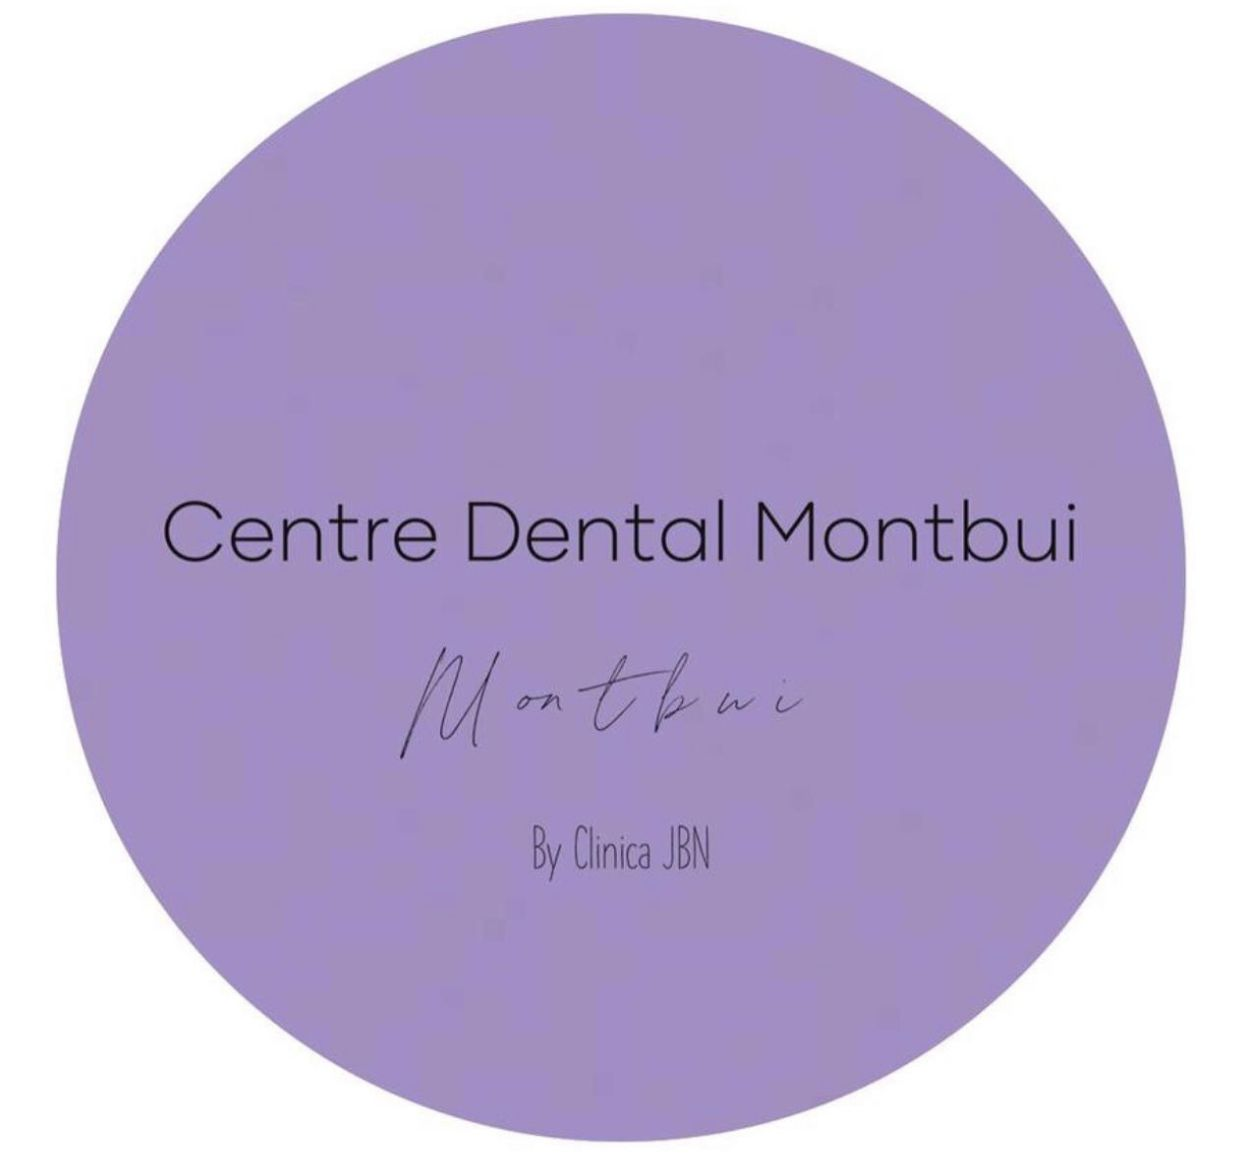 Centre Dental Montbui